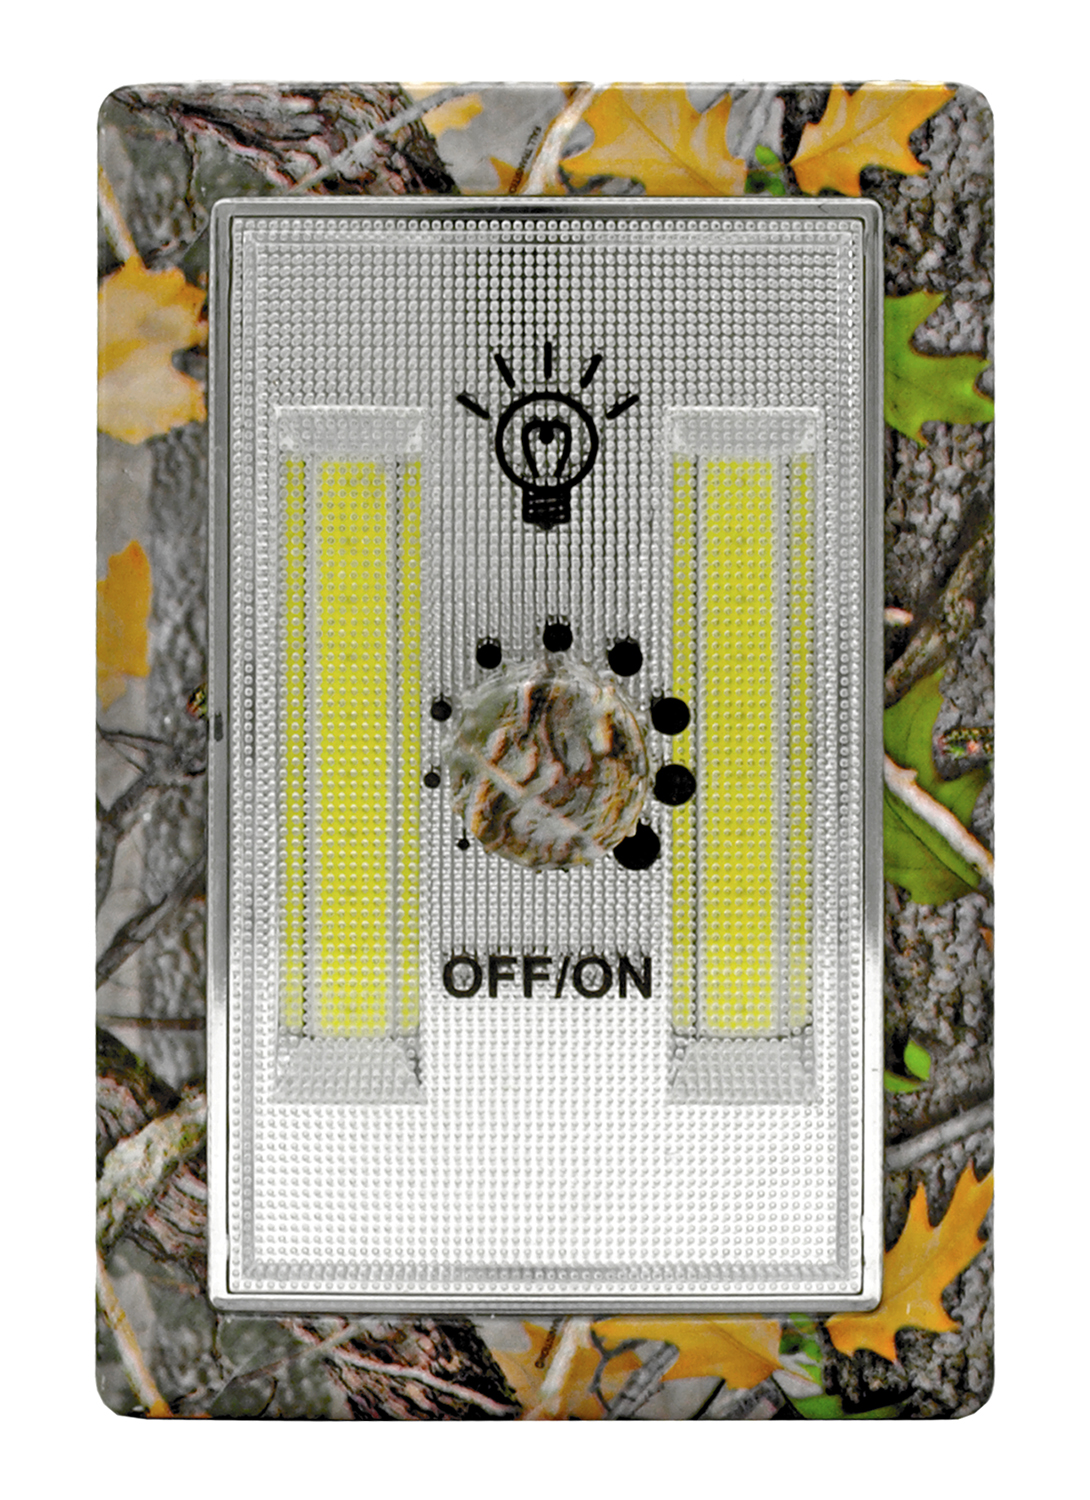 Wall Mount LED Light Dimmer Switch Night Light -Woodland Camo